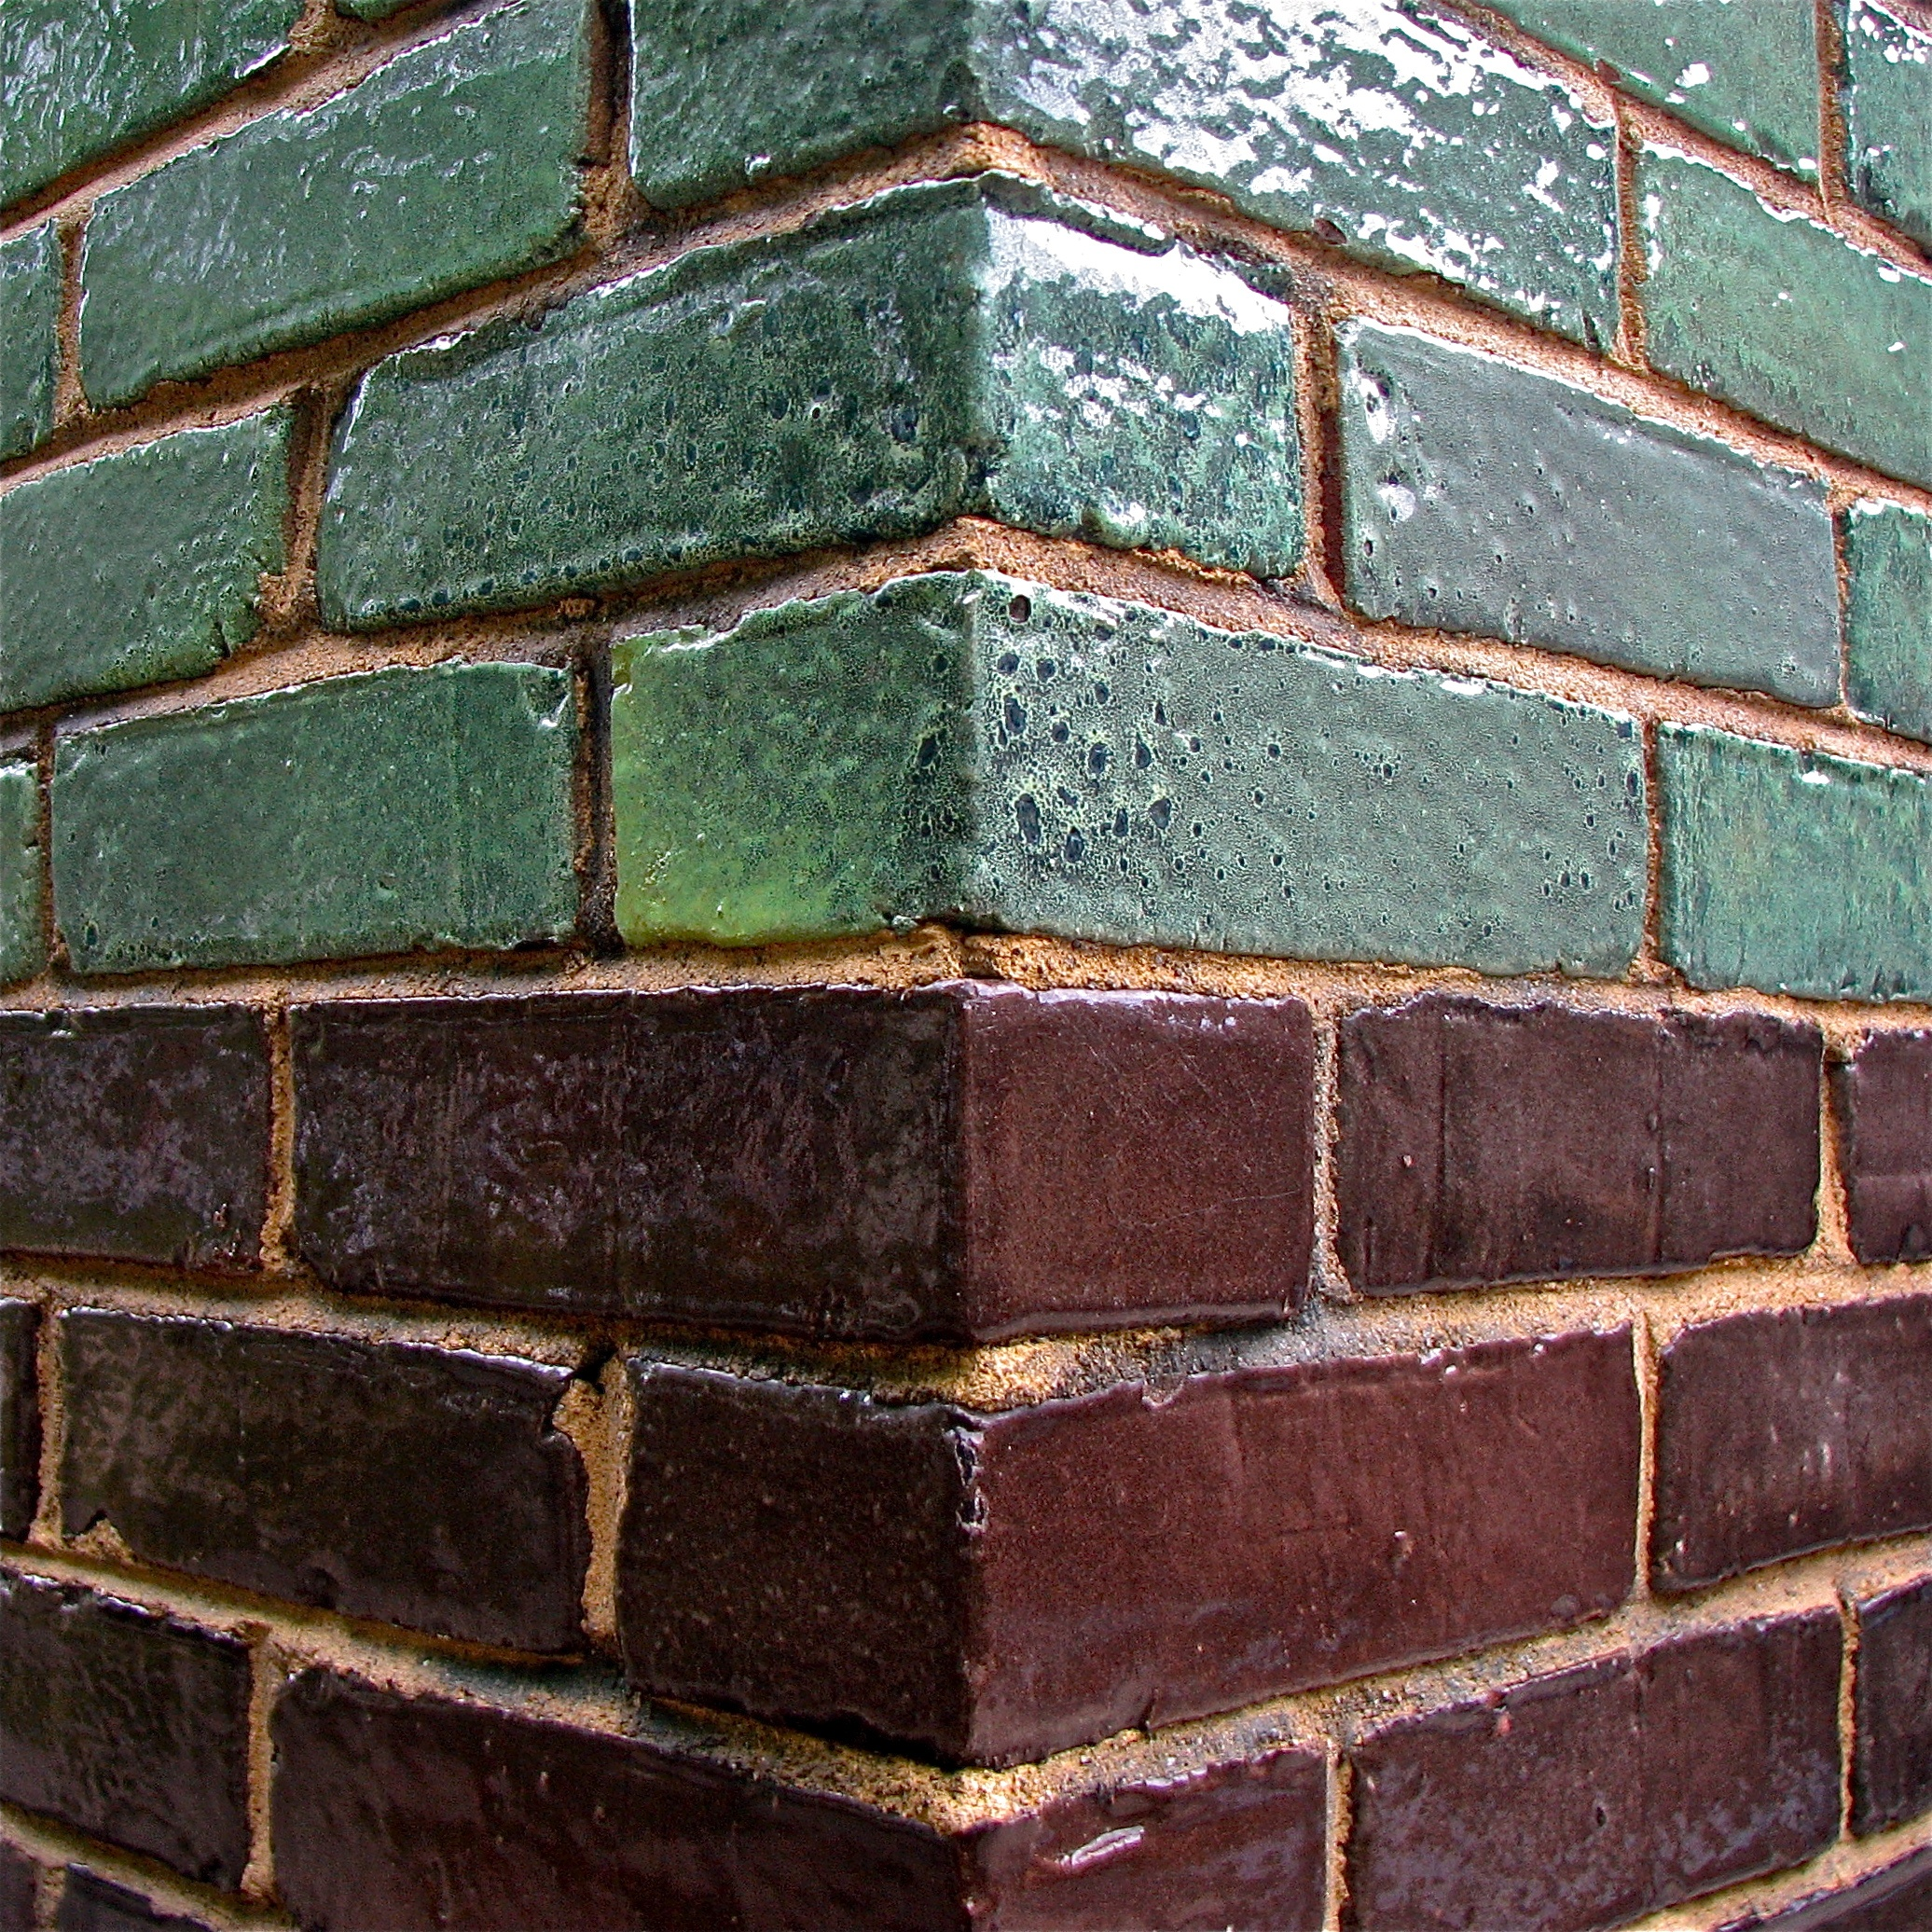 2.color • glazed.brick by origamidon, on Flickr